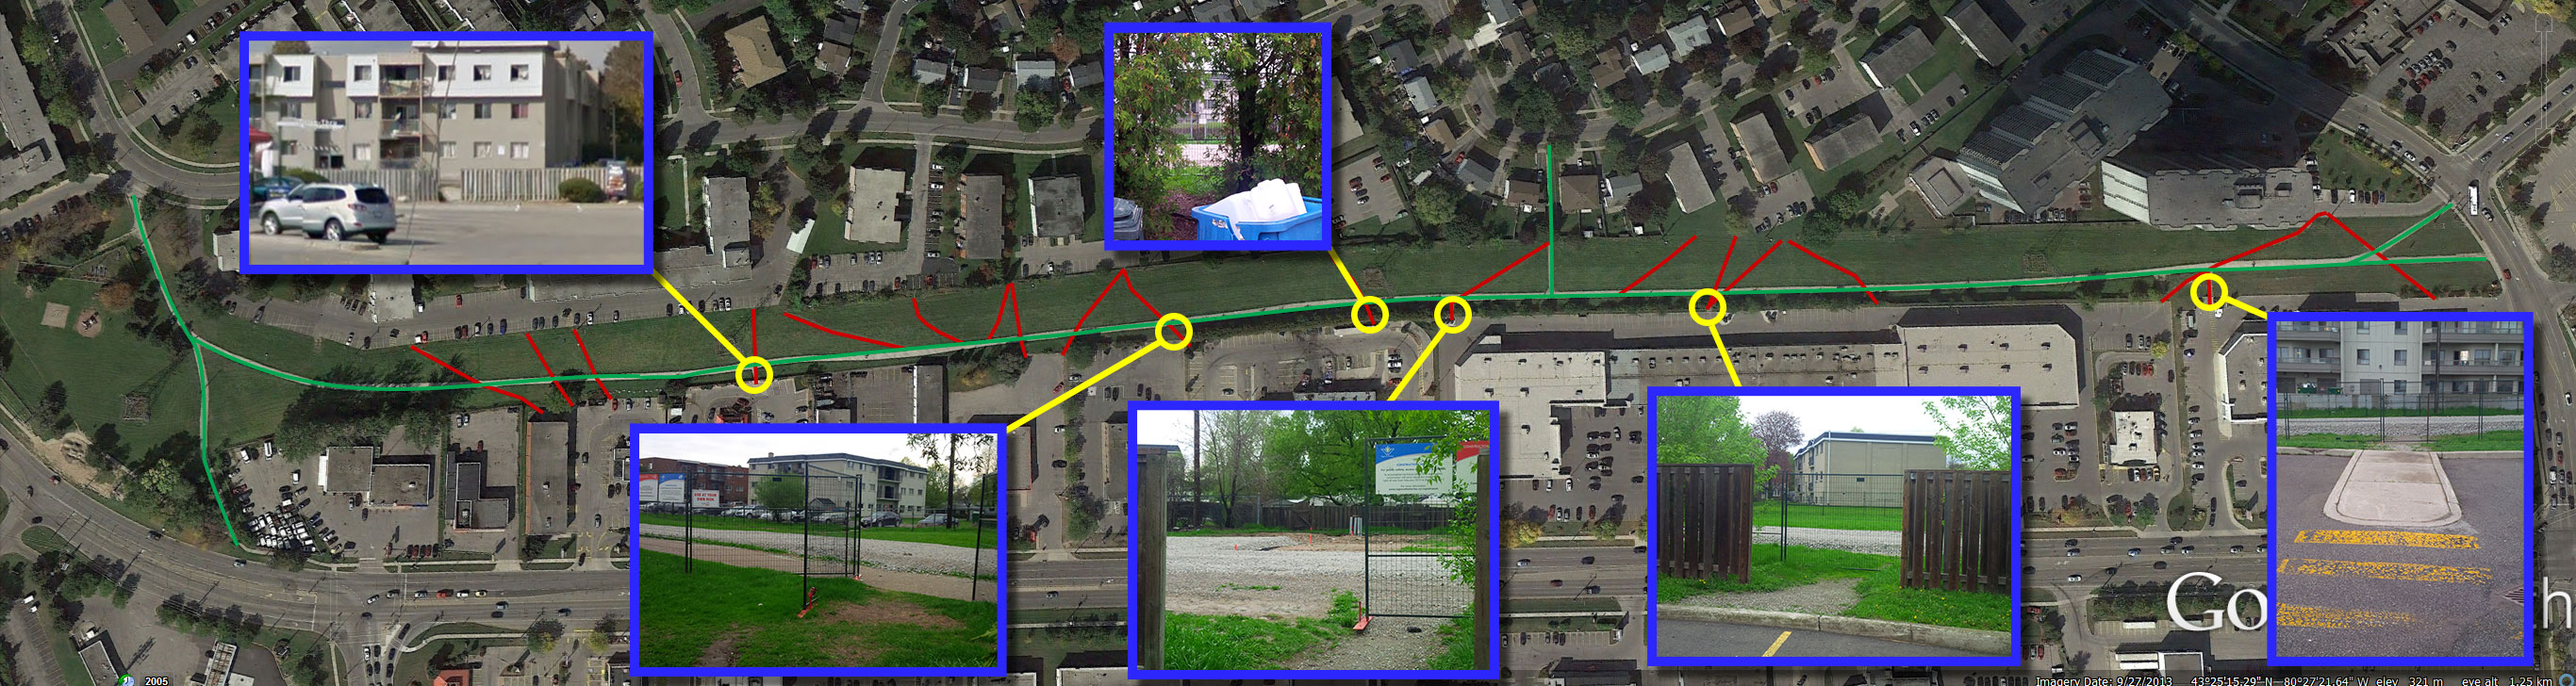 Formal paths in green. Informal paths in red. Selected crossings shown with inset photos